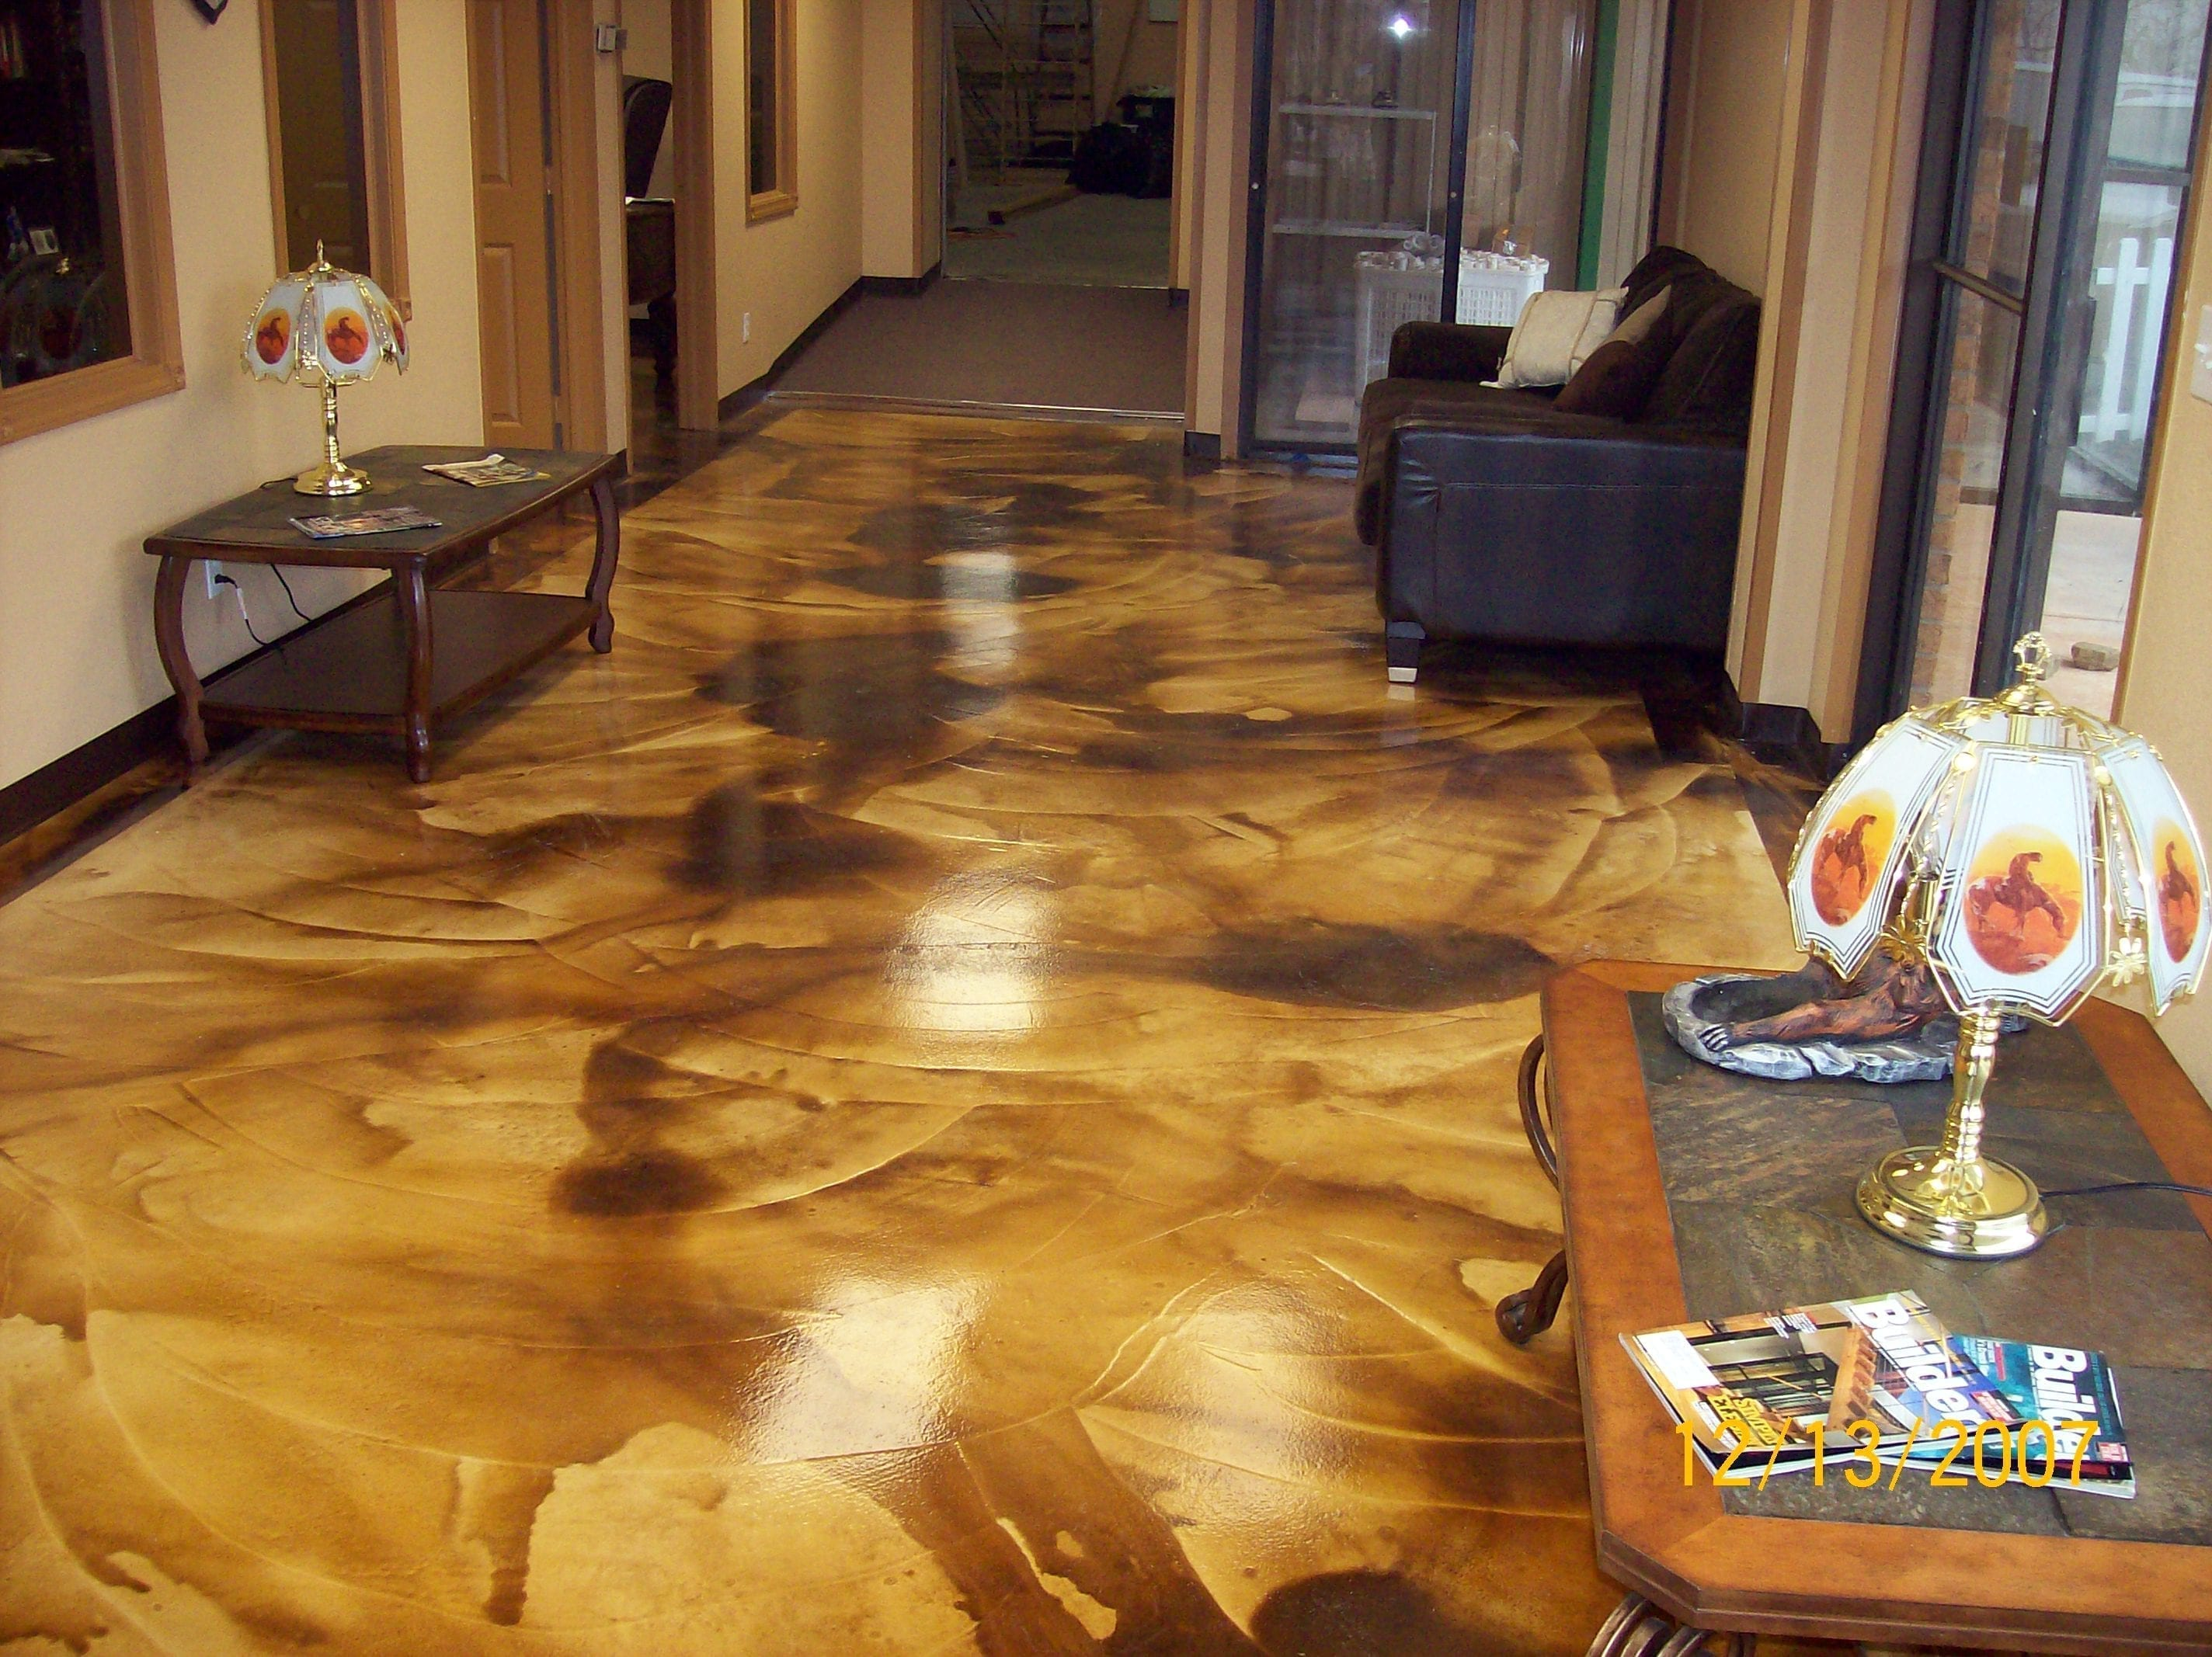 Design by project: How Was This Concrete Acid Stain Project Done?